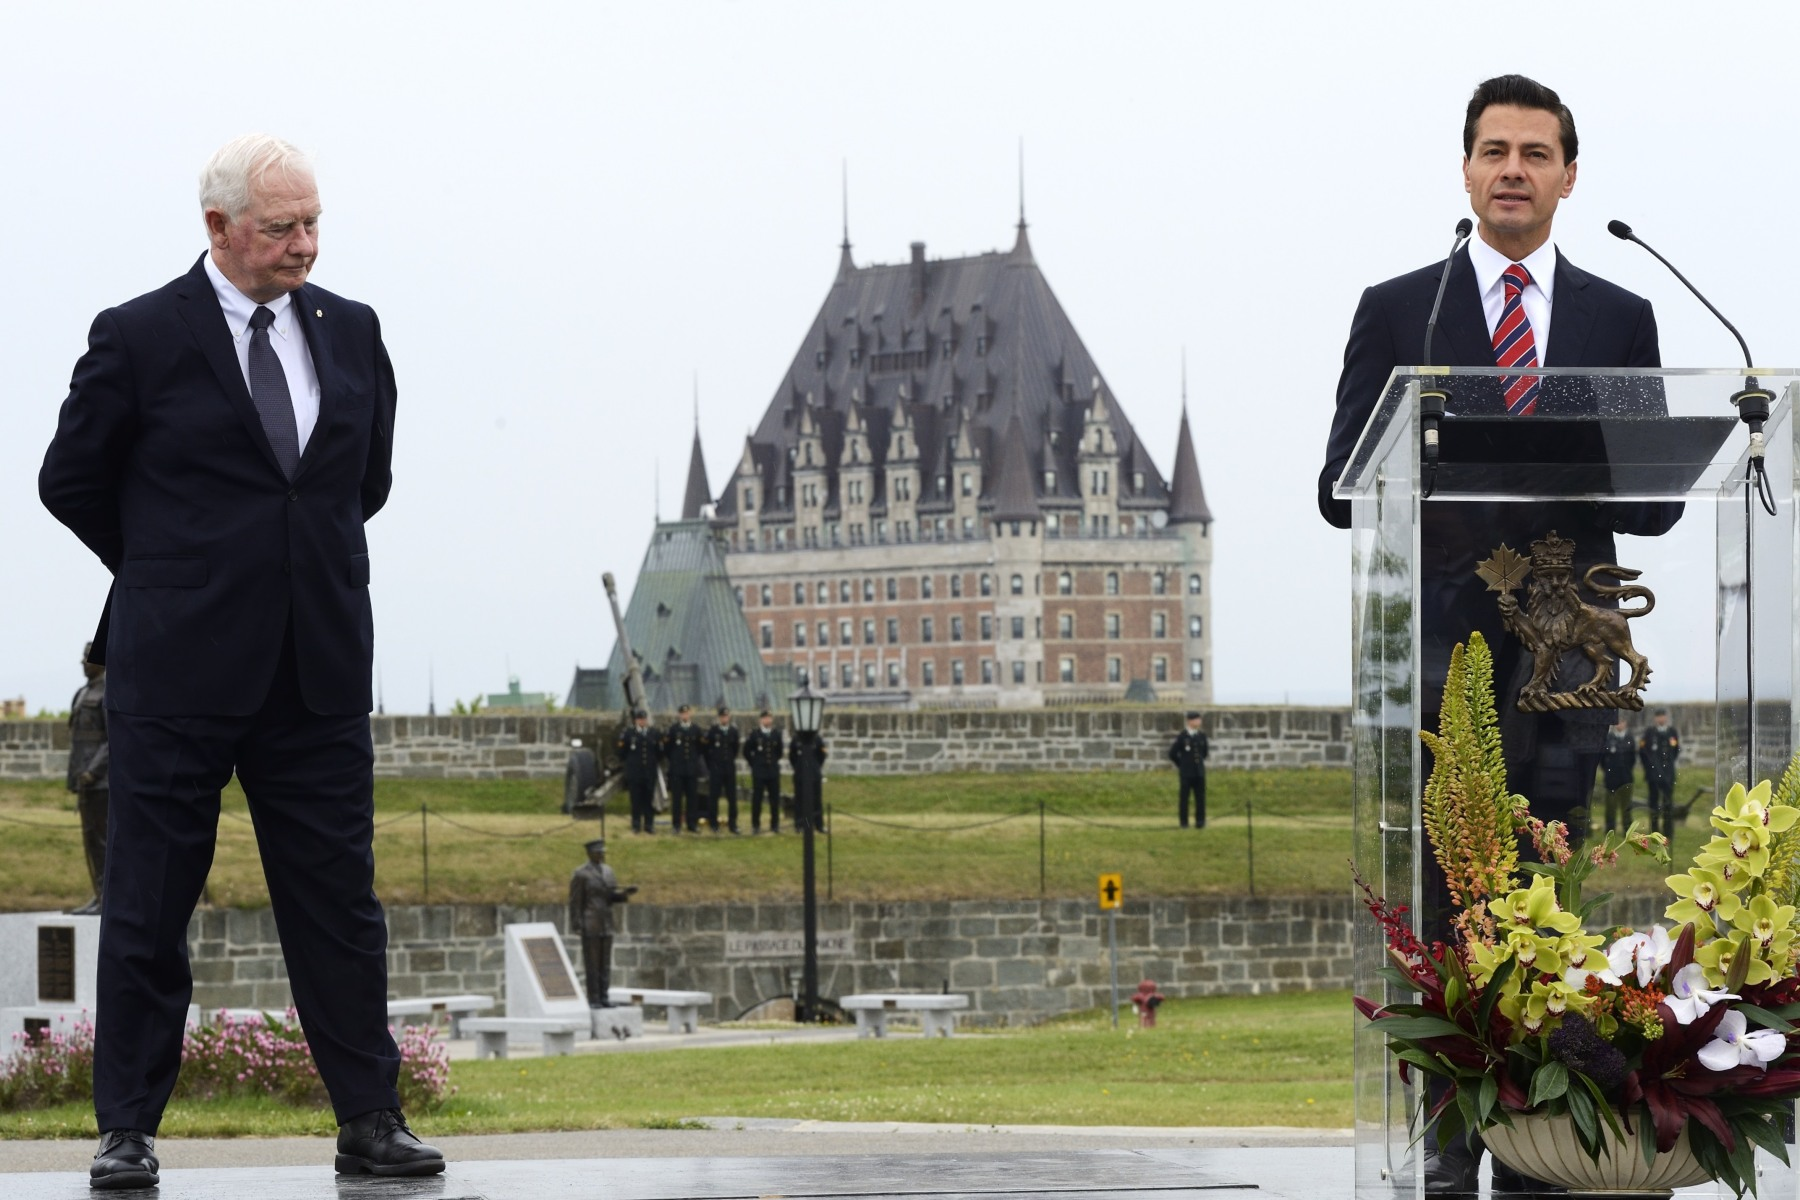 His Excellency Enrique Peña Nieto, President of the United Mexican States delivered his first speech on Canadian soil.